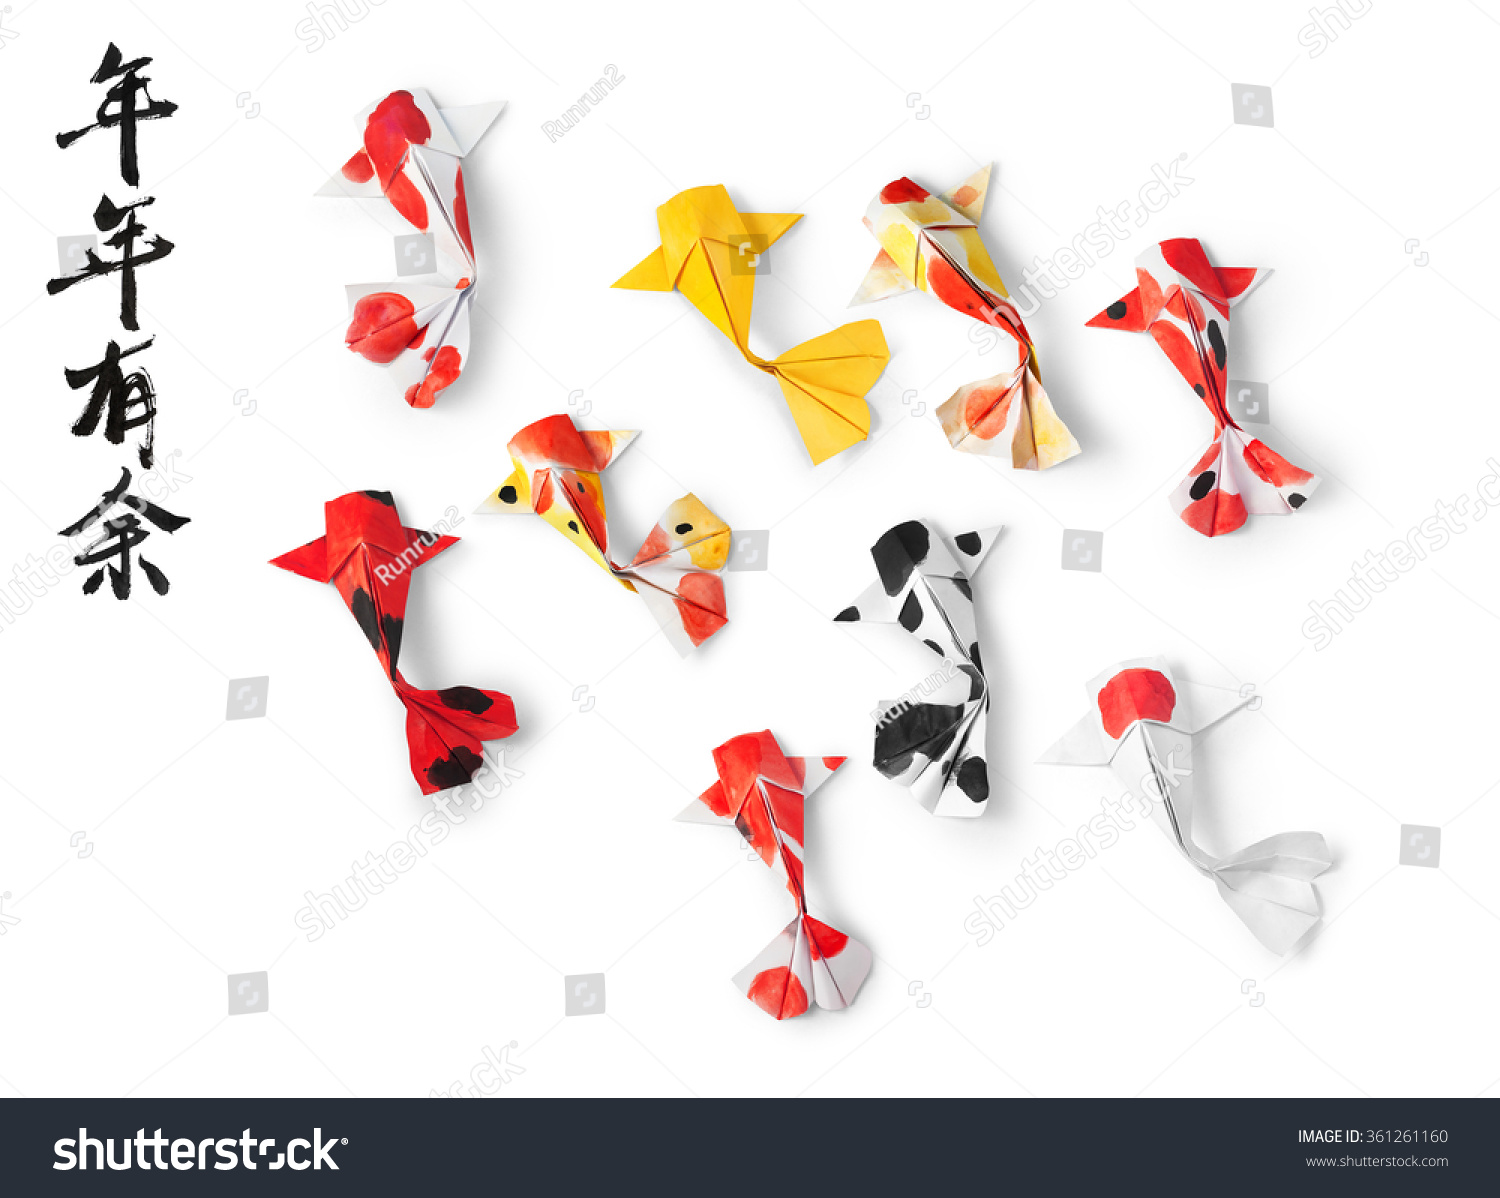 Handmade paper craft origami koi carp fish on white for Origami koi fish easy